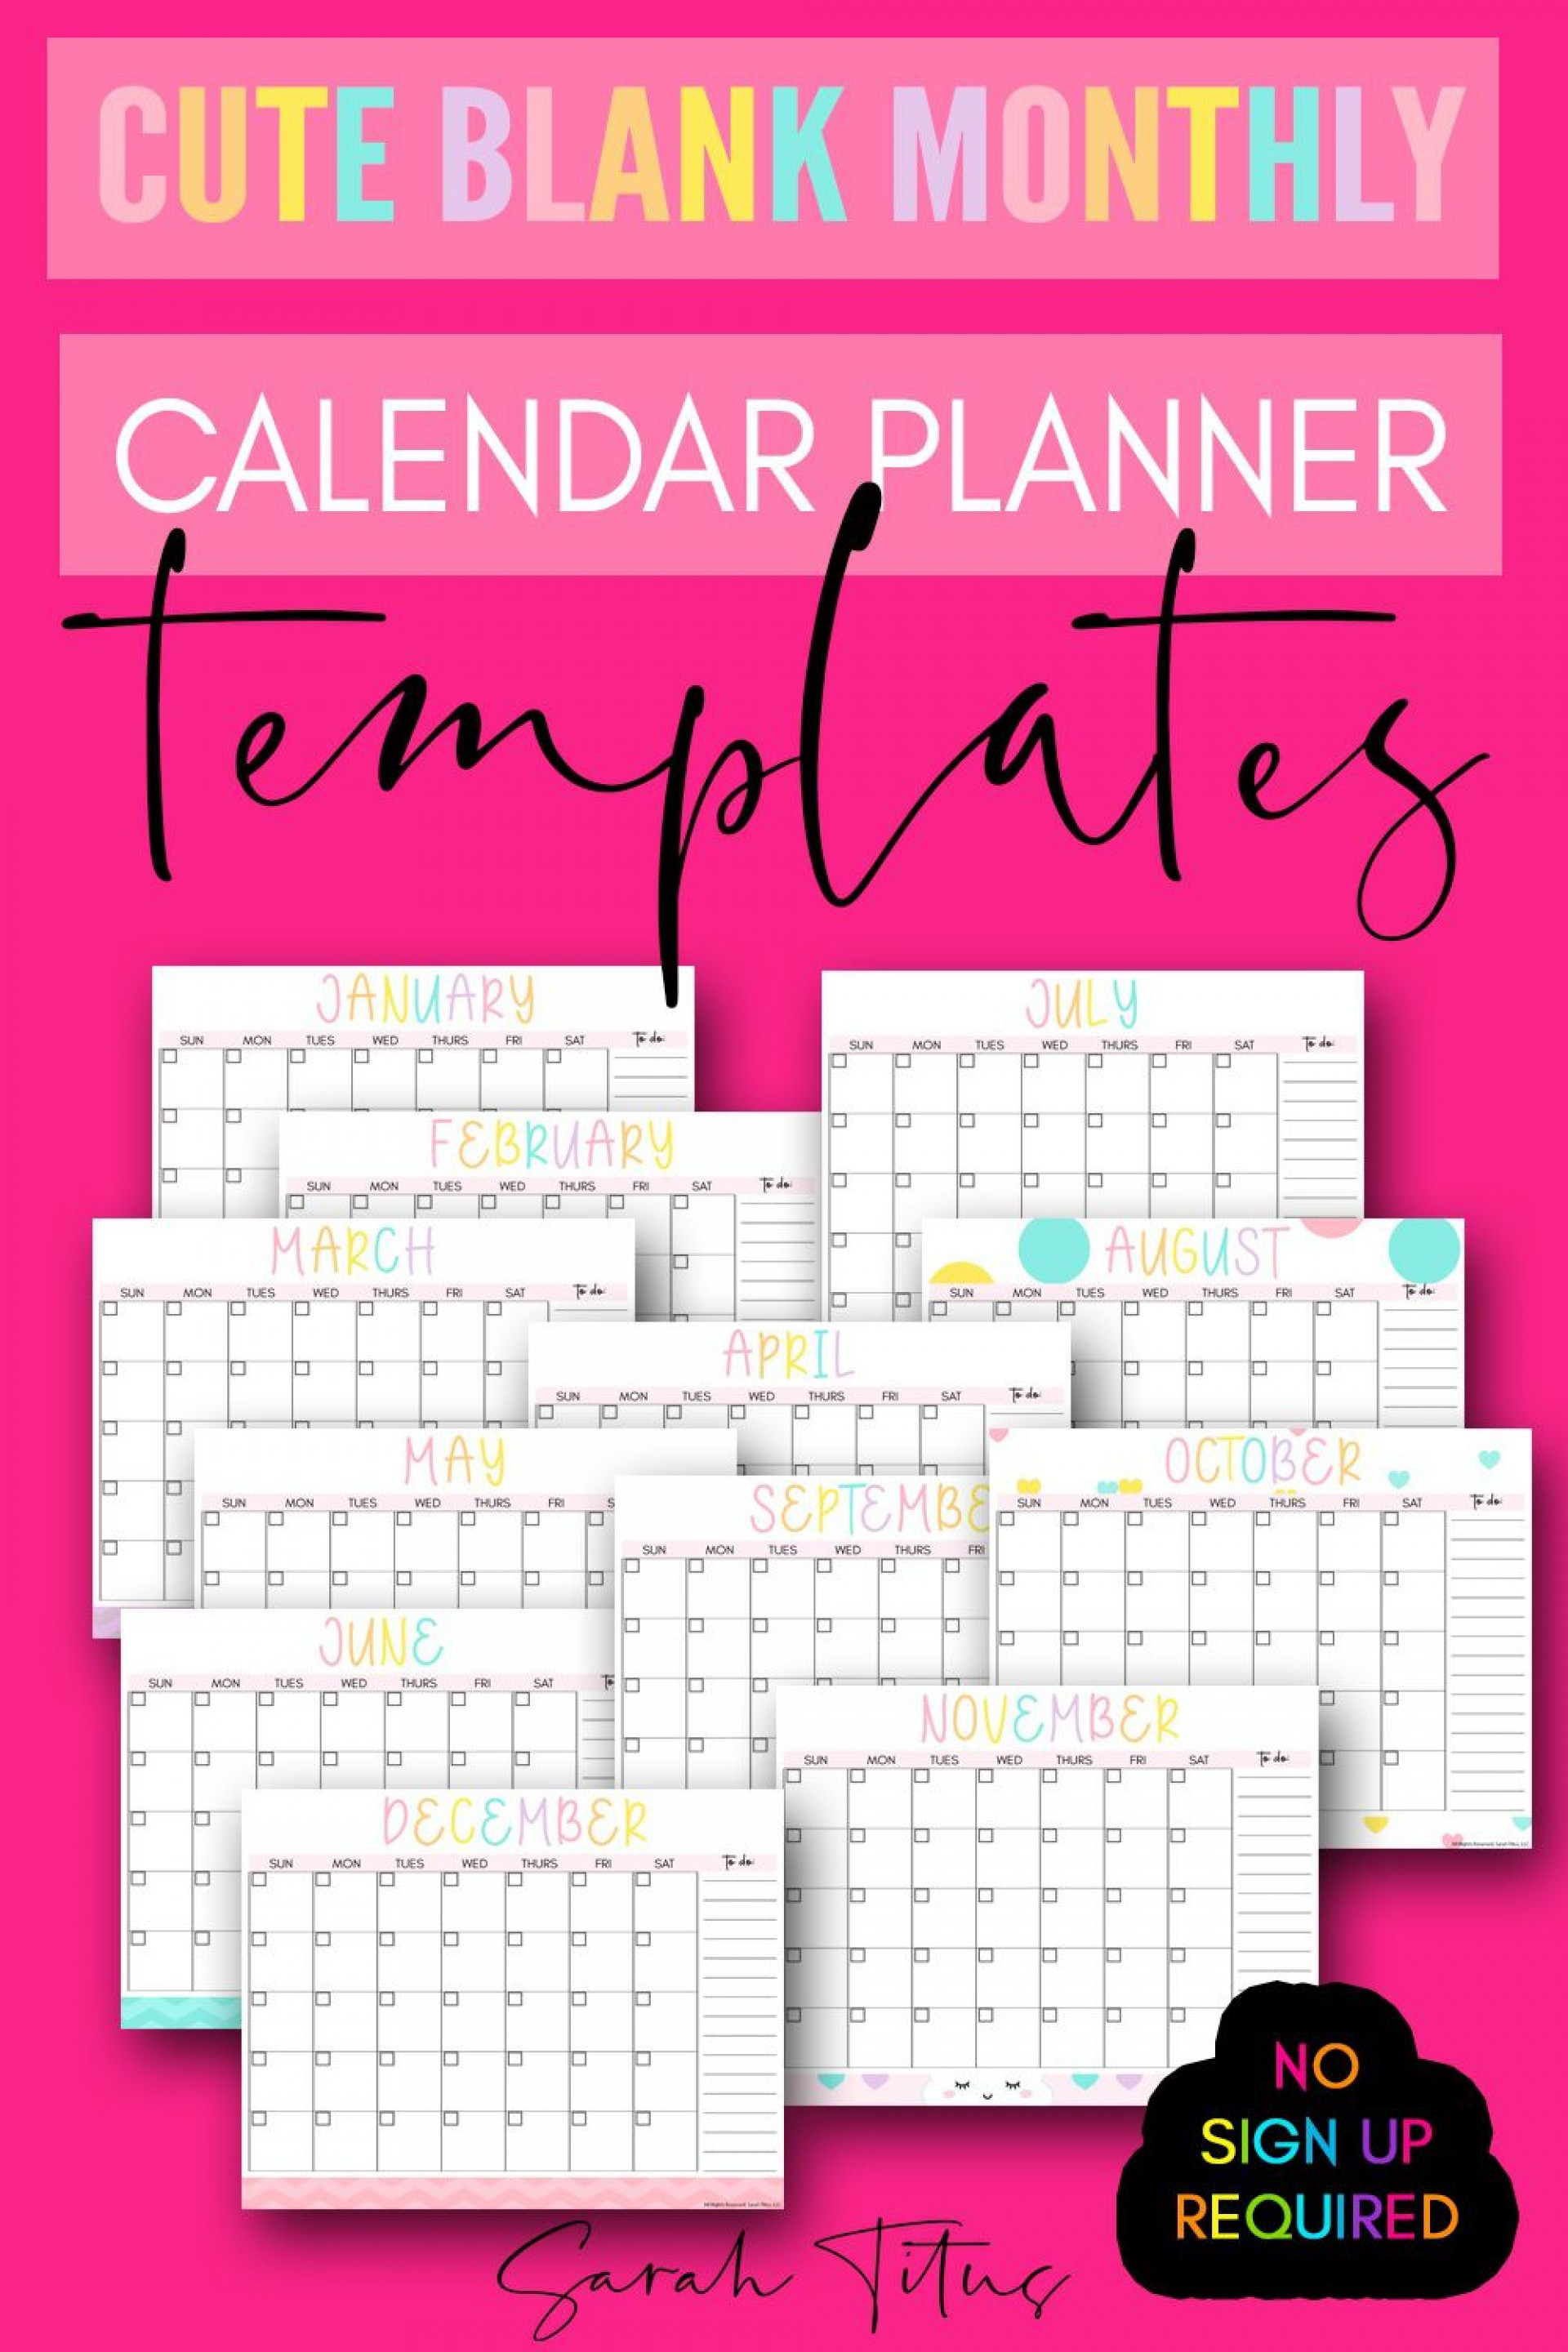 008 Remarkable Free Printable Blank Monthly Calendar Template Picture 1920